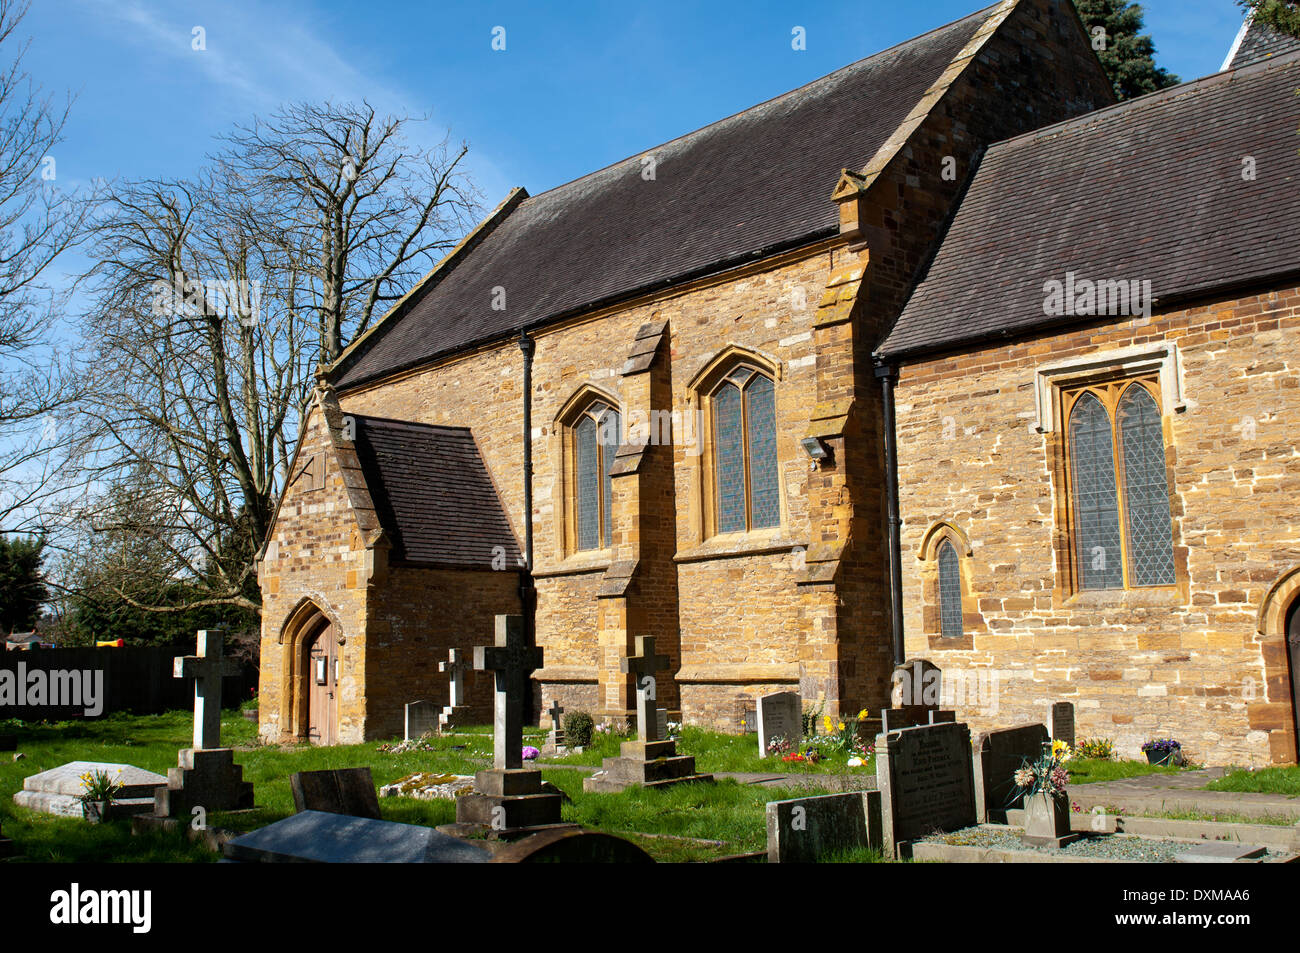 All Saints Church, Little Billing, Northamptonshire, England, UK - Stock Image